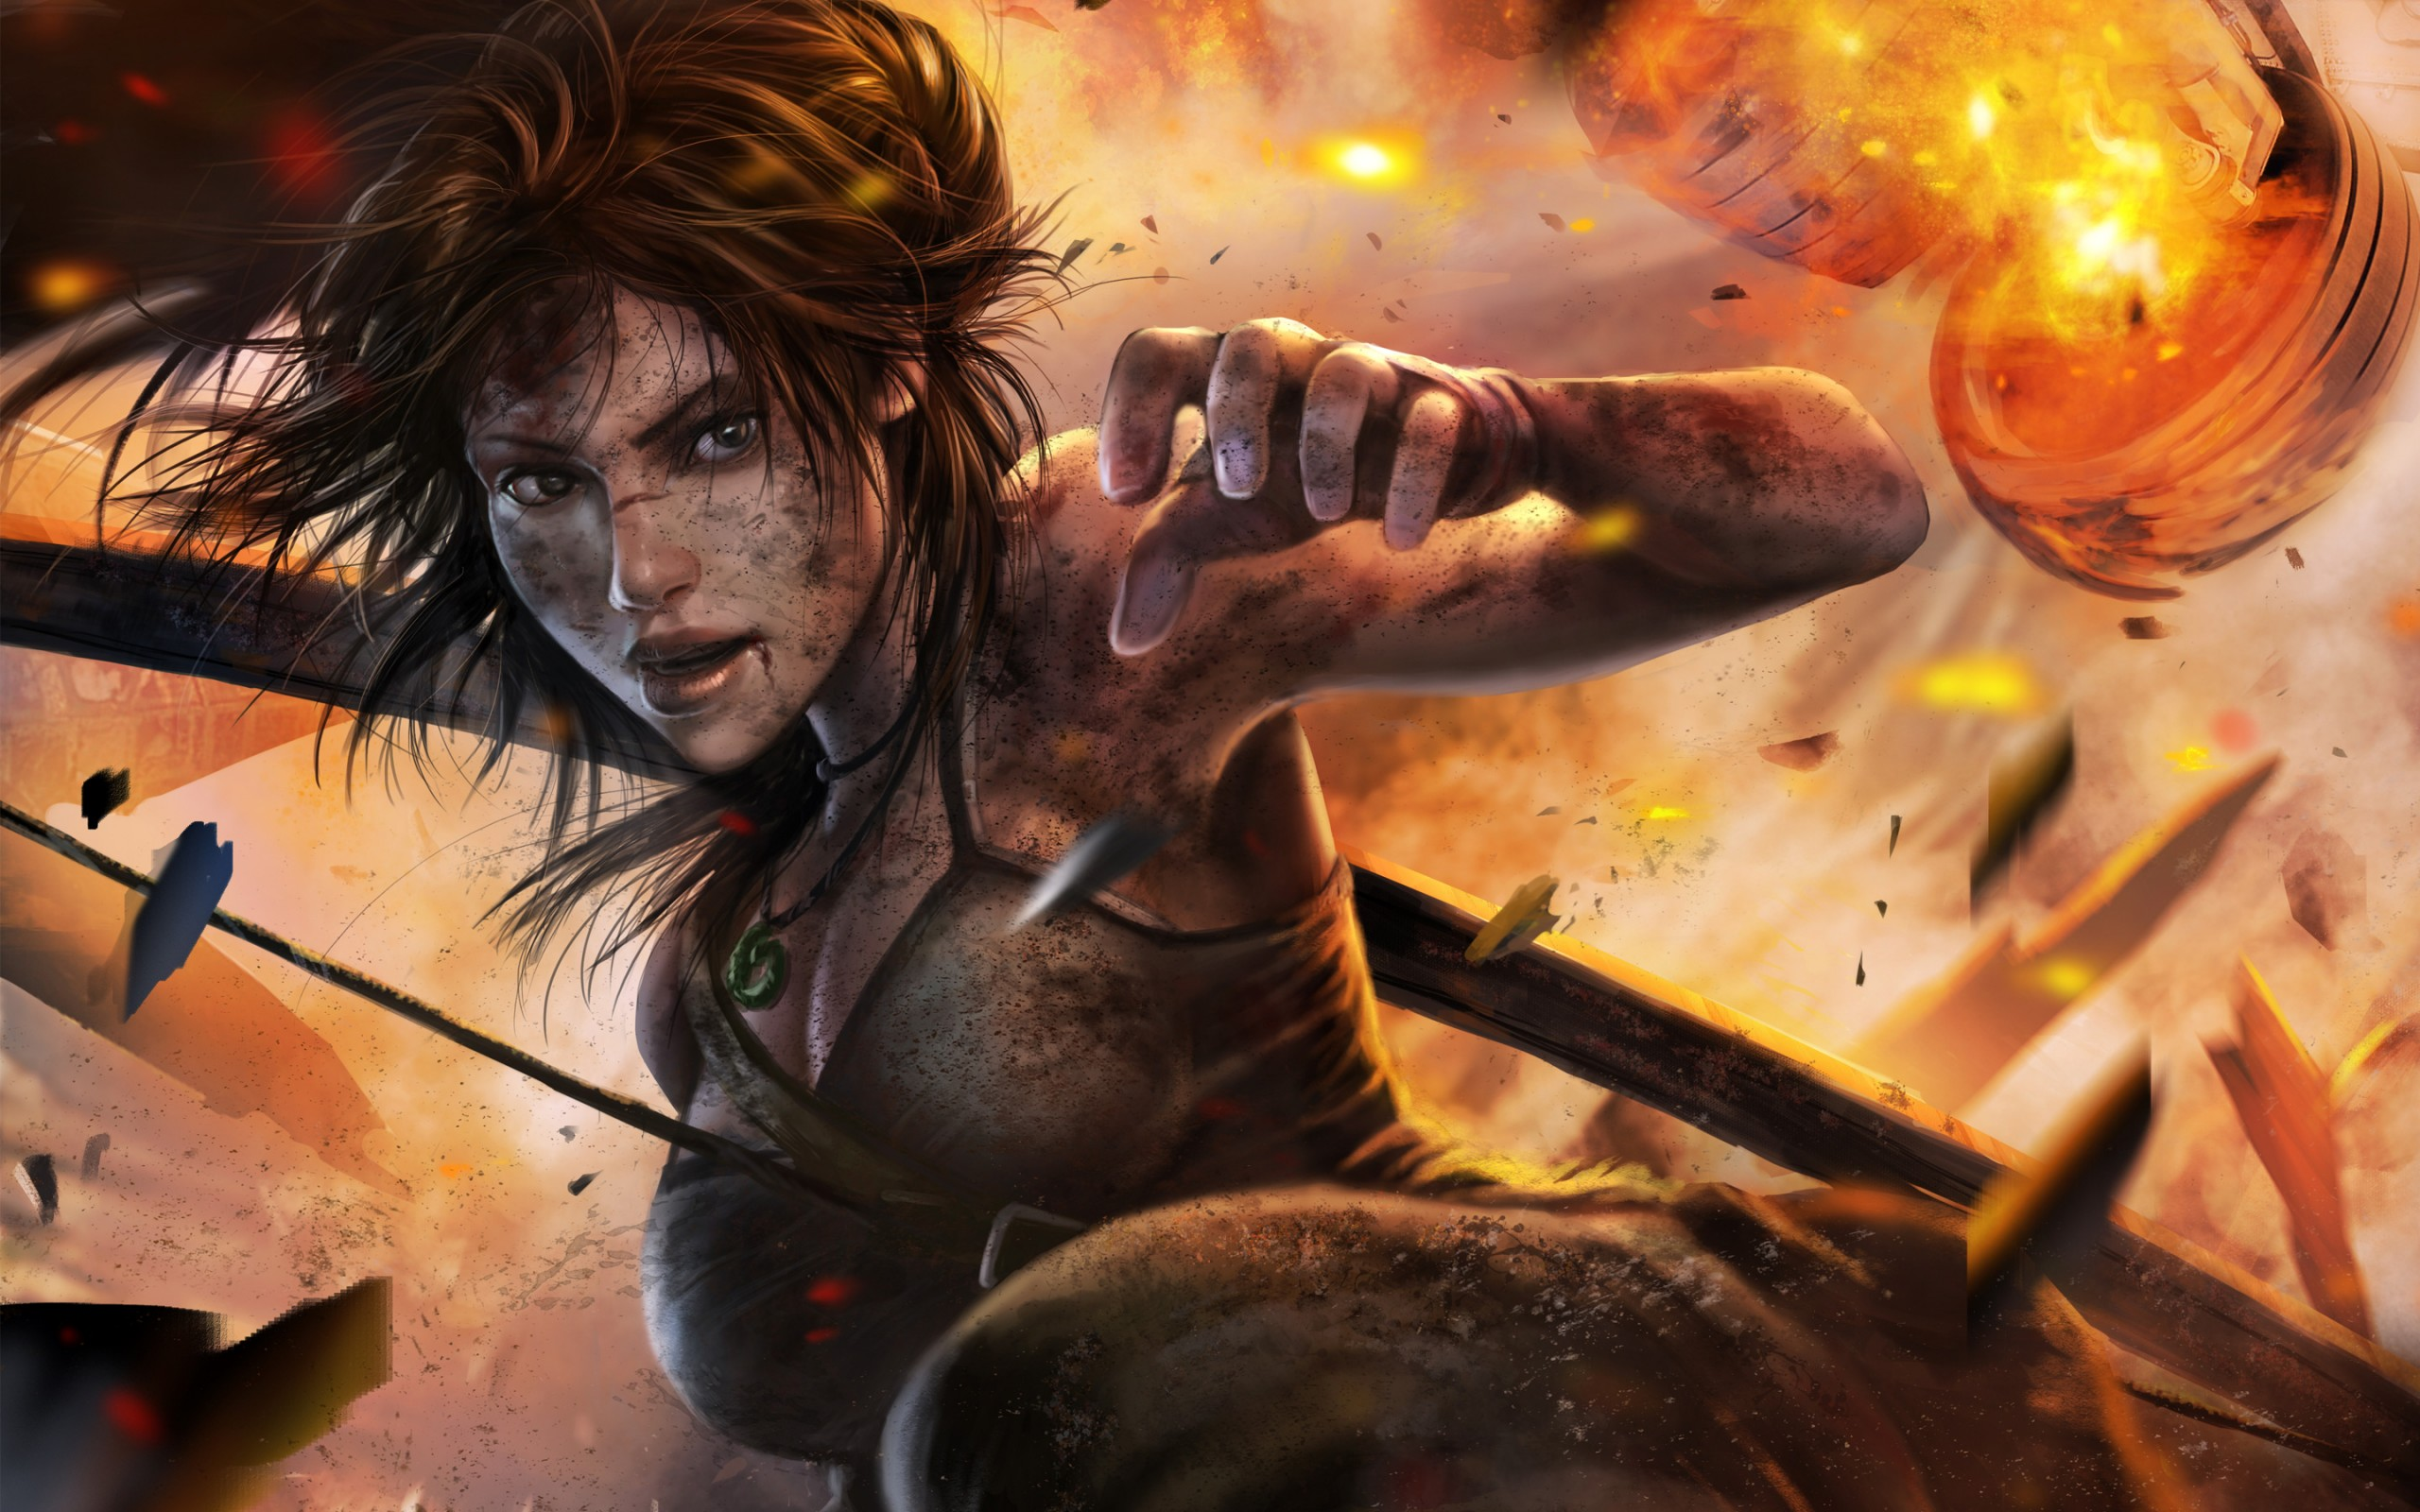 Wonder Woman Cute Wallpaper Tomb Raider Lara Croft Wallpapers Hd Wallpapers Id 17389